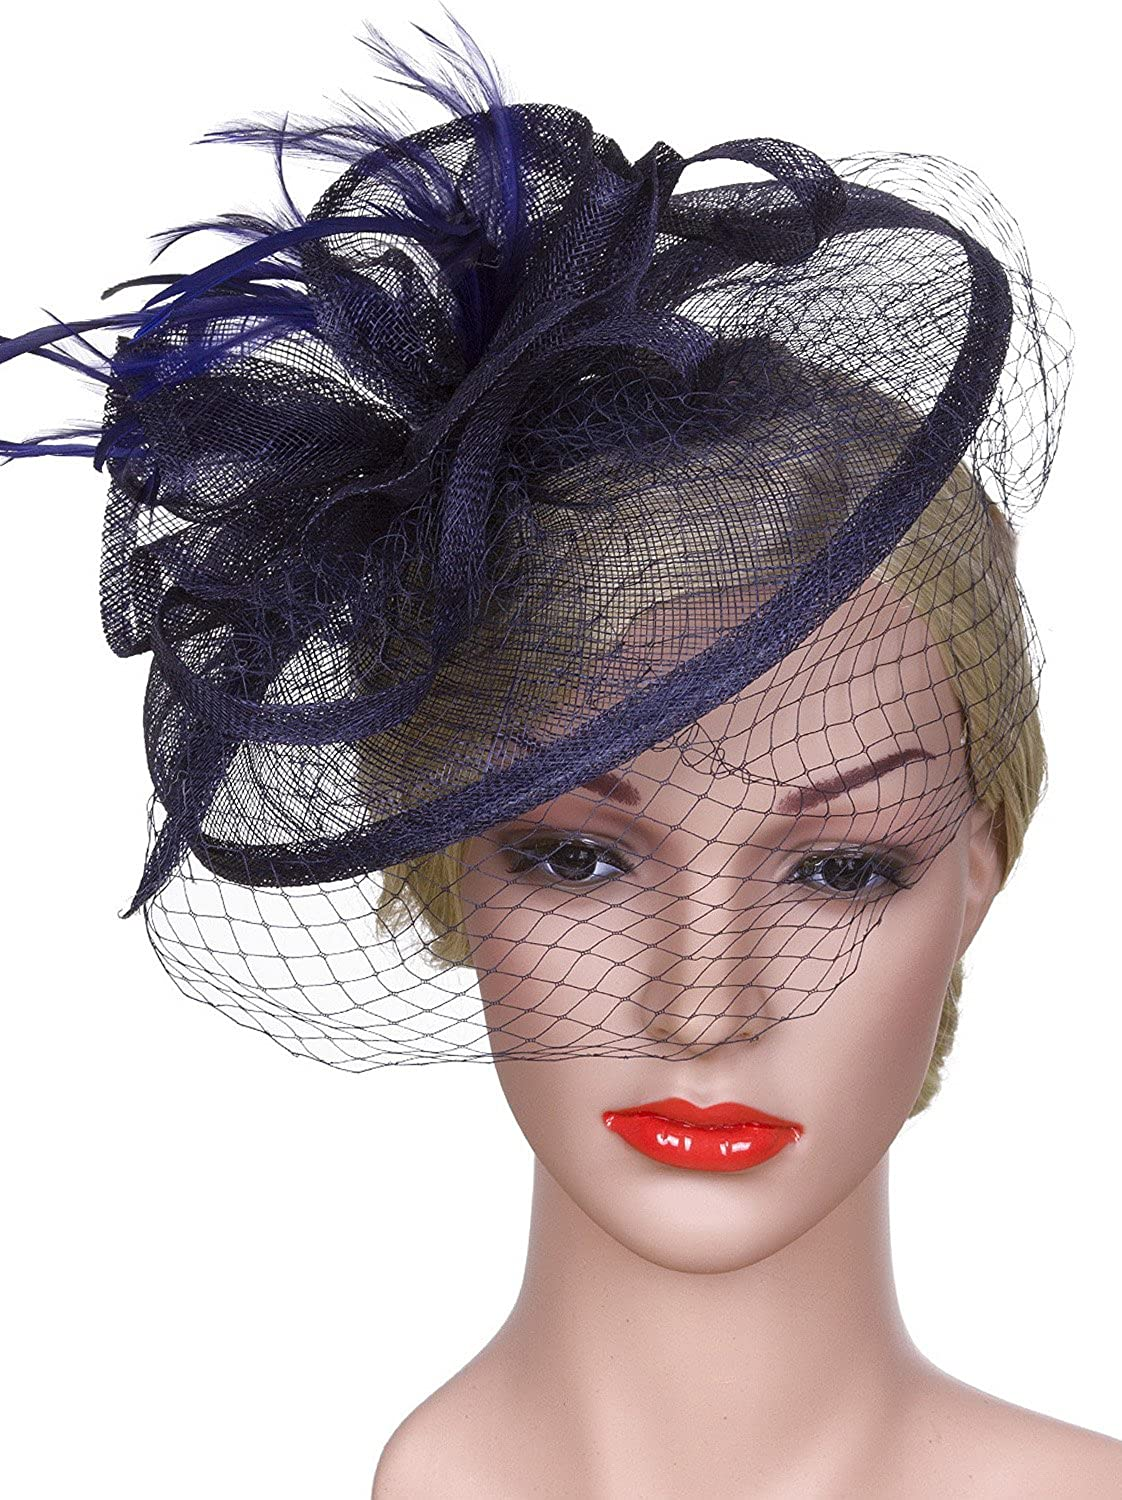 Vijiv Women Vintage Derby Fascinator Hat With Veil Pillbox Headband Feather Cocktail Tea Party JXJ-FH3308B